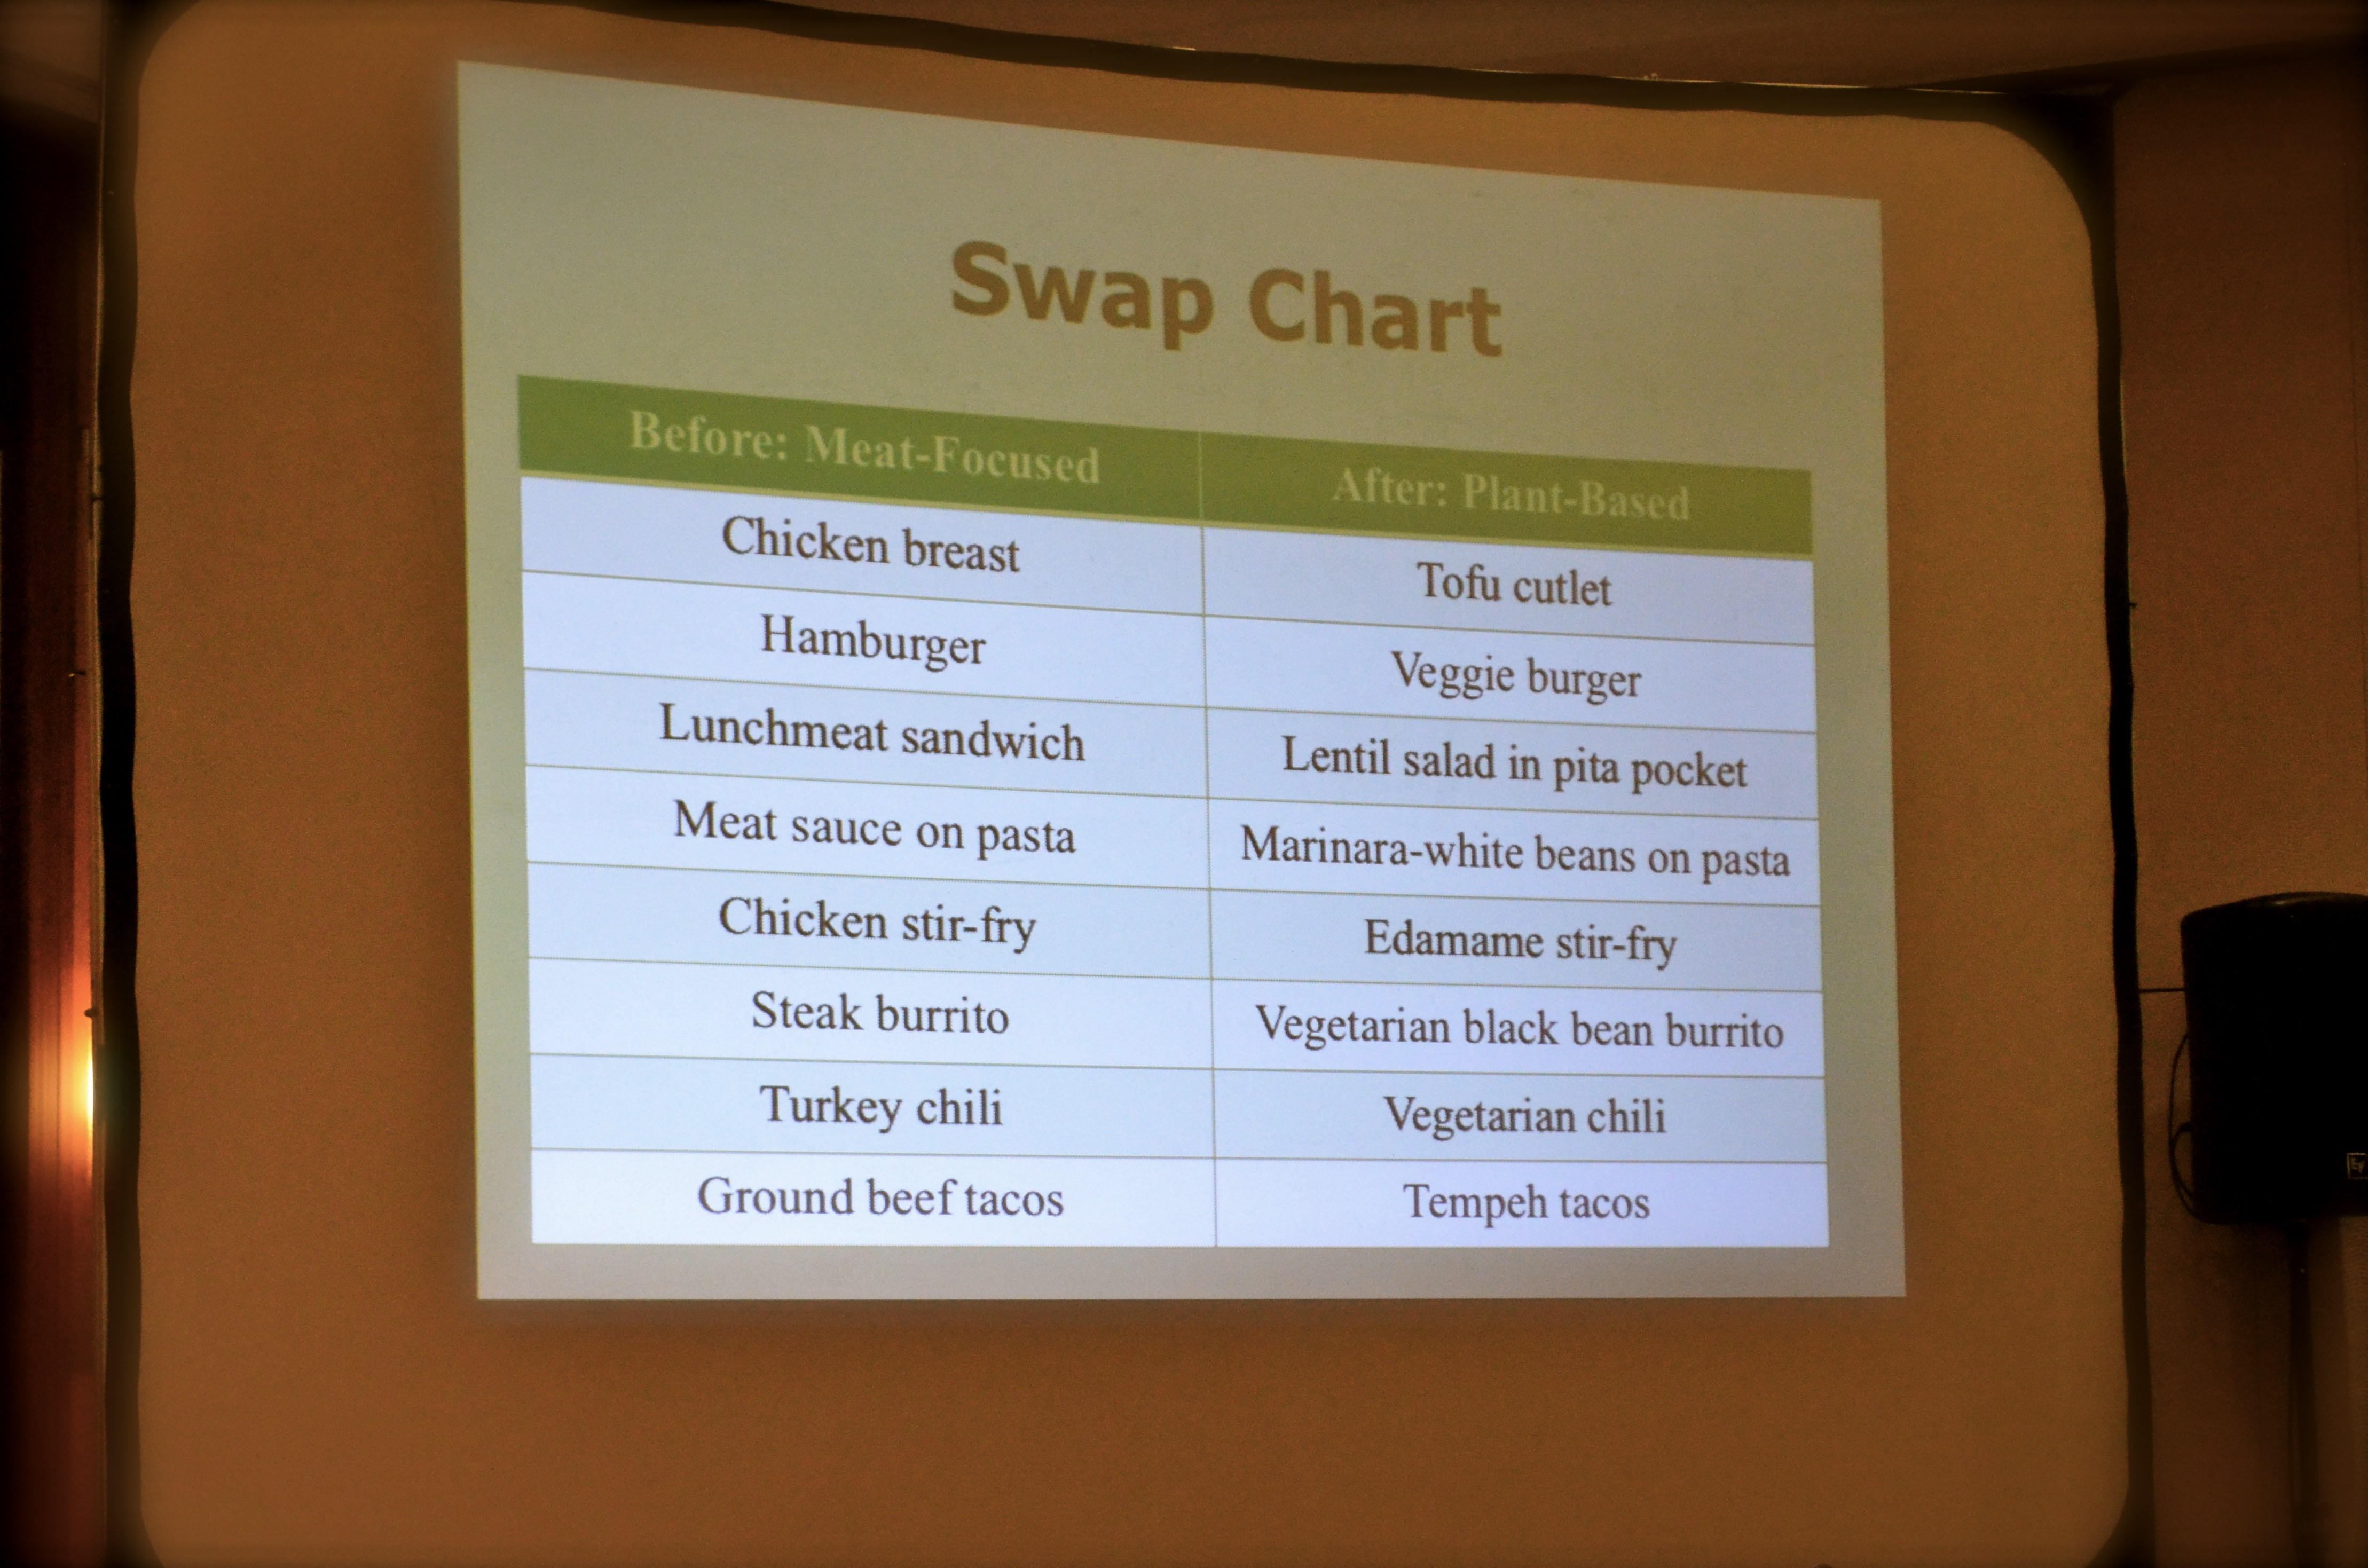 Florida Grapefruit Meal Plan Swap Chart